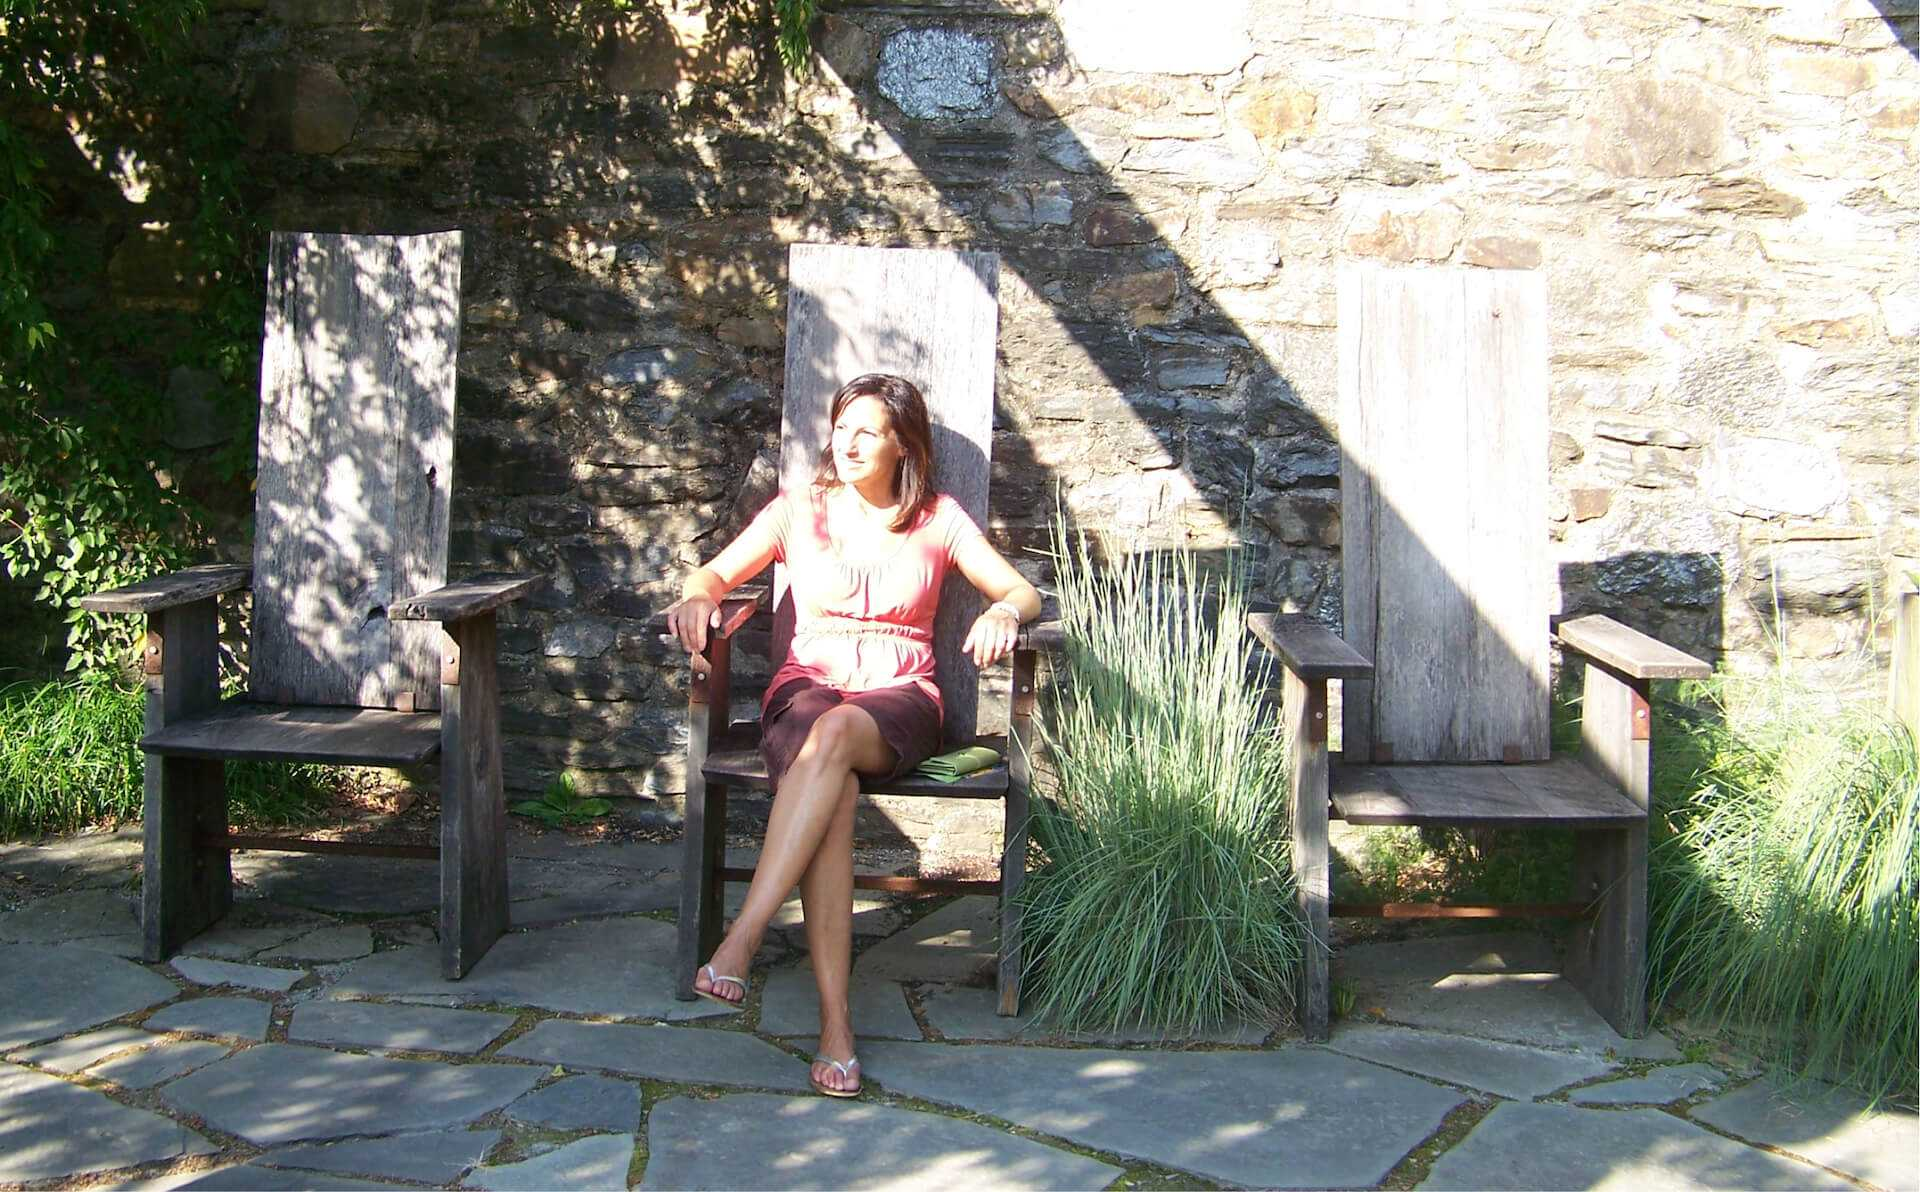 catharine ann farnen sitting in a chair outdoors among landscape architecture